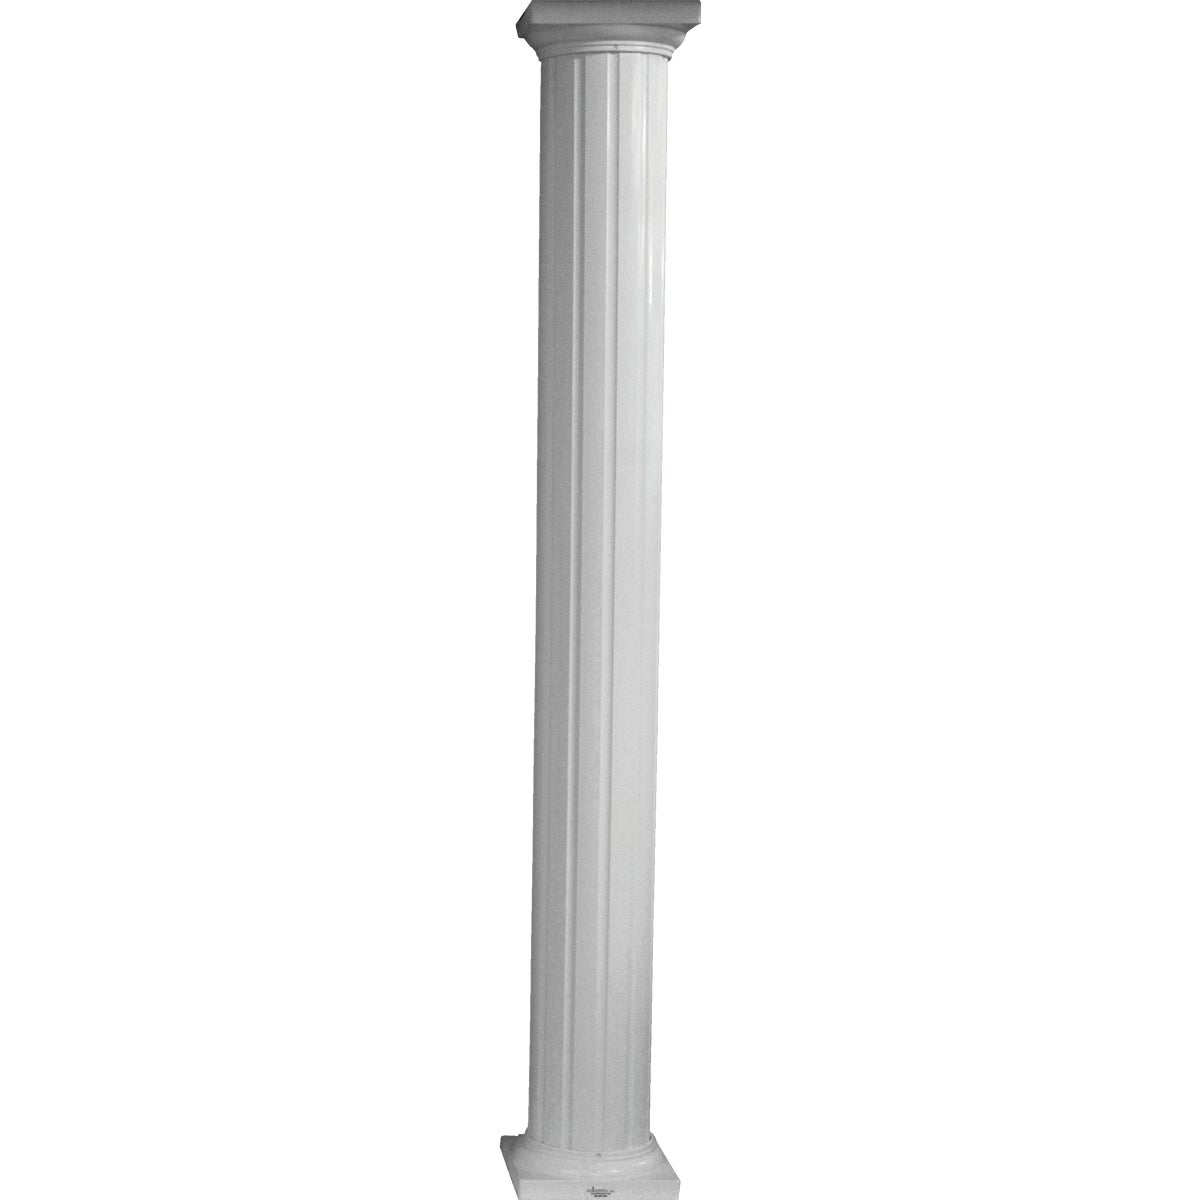 "8""X8' COLUMN RND ALUM - RD0808WHT by DIXIE PACIFIC"